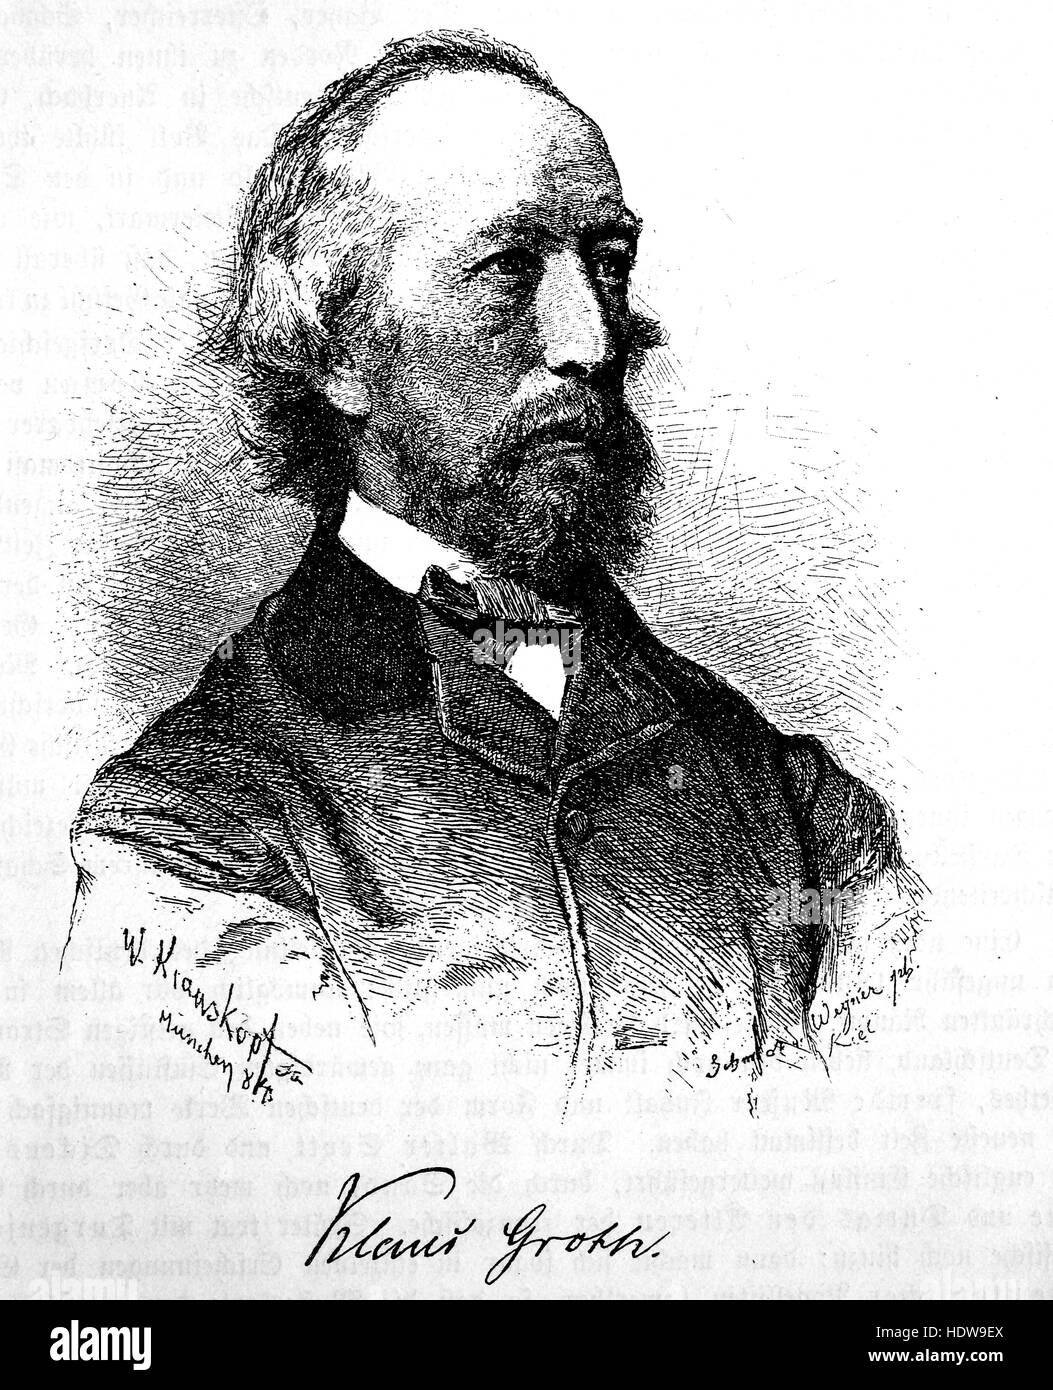 Klaus Groth, 1819-1899, a Low German poet, woodcut from the year 1880 - Stock Image